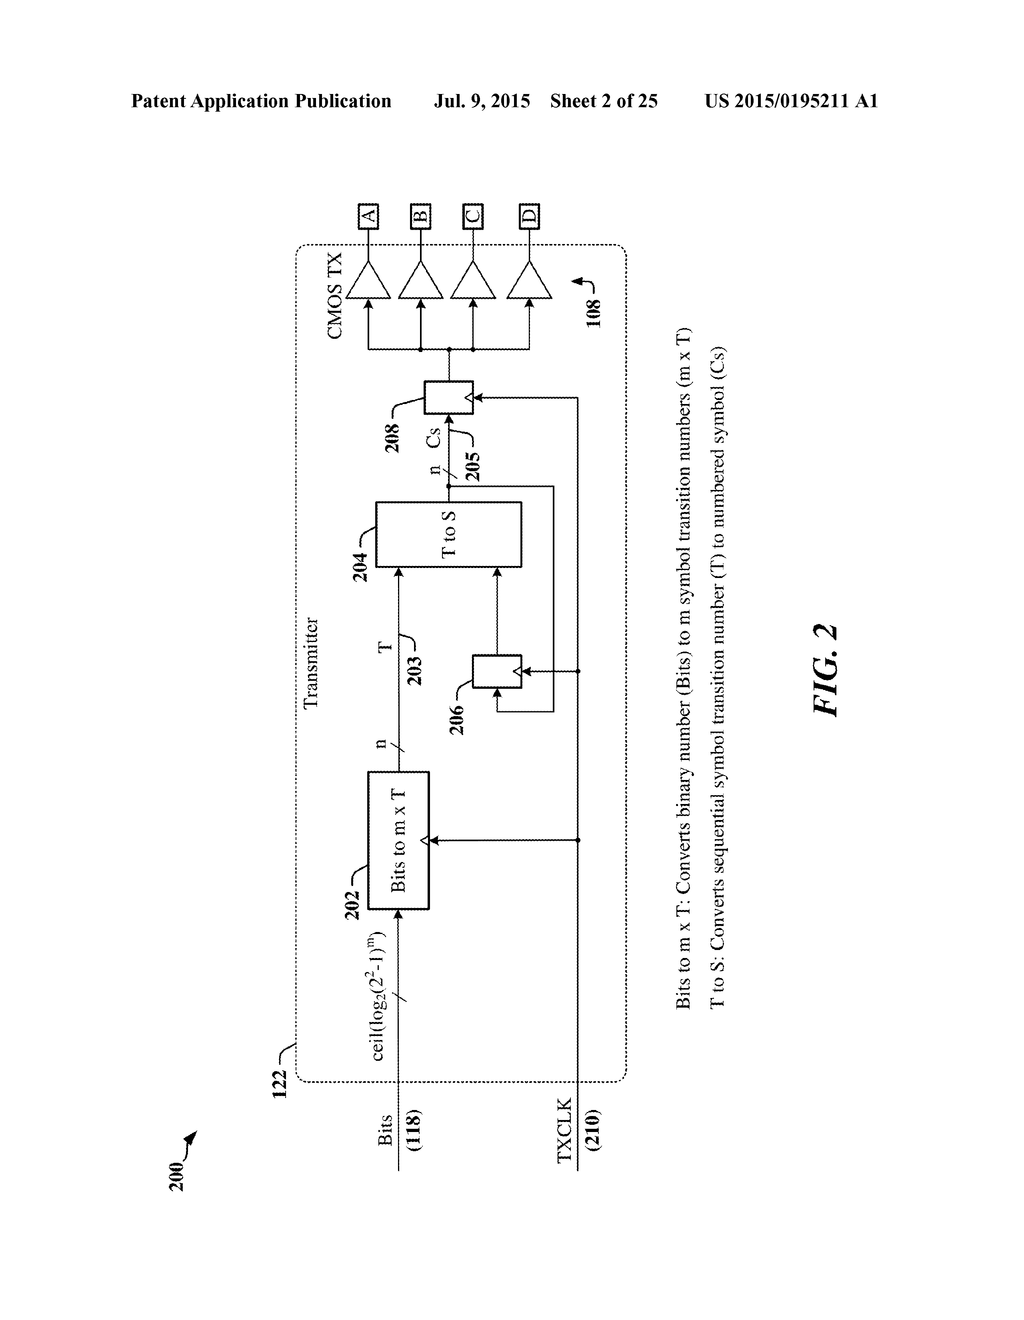 hight resolution of low voltage differential signaling or 2 wire differential link with symbol transition clocking diagram schematic and image 03